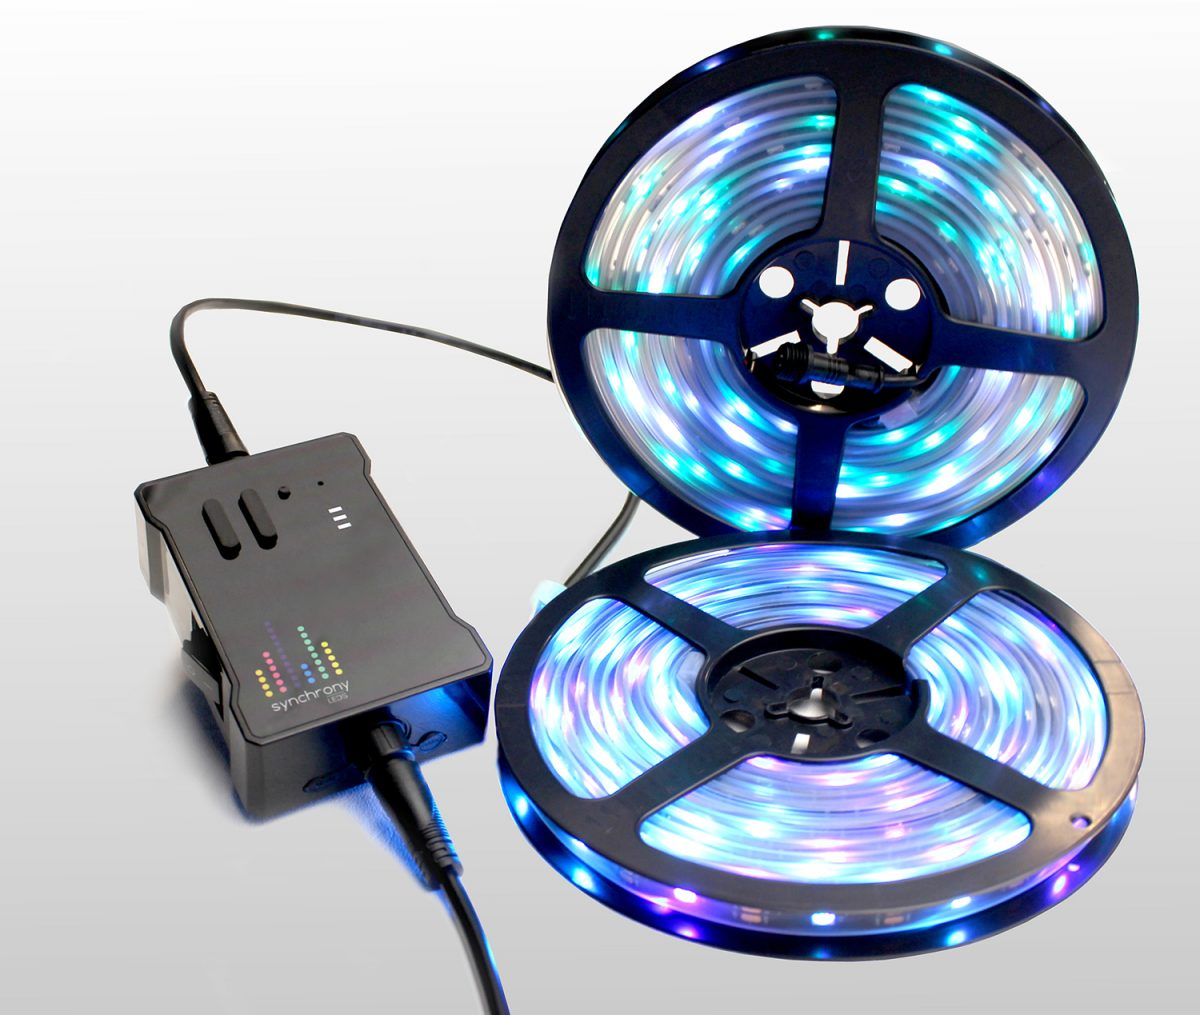 LED Music Light   Lights That Synchronize - Music Controlled